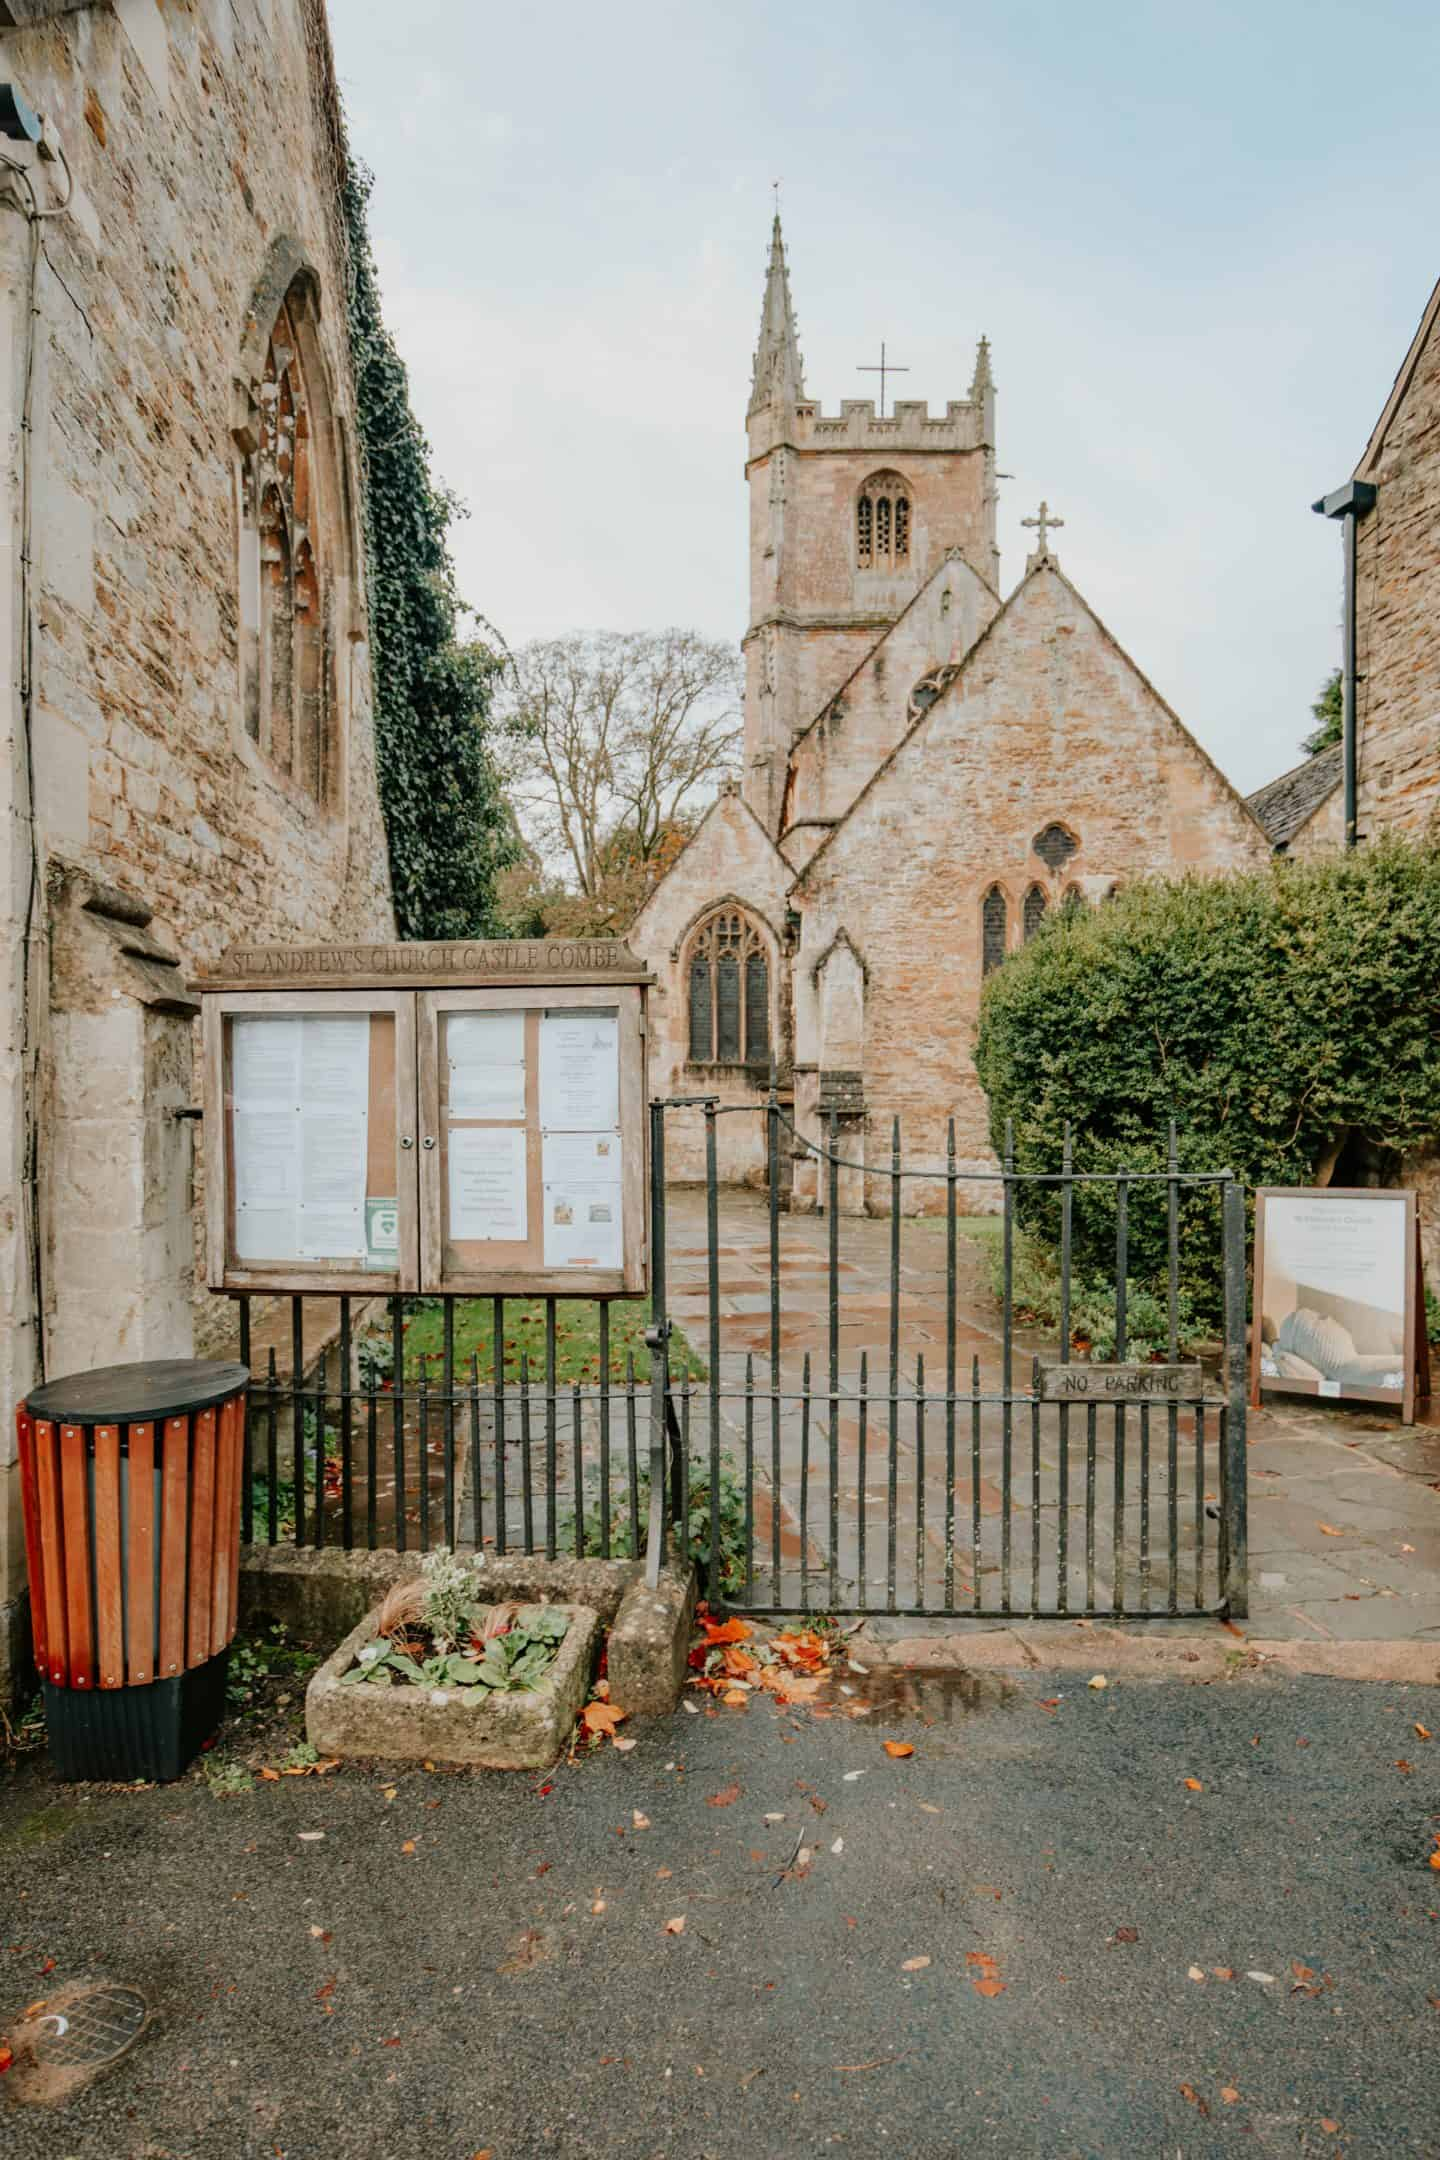 St.Andrew's Church, Castle Combe Cotswolds